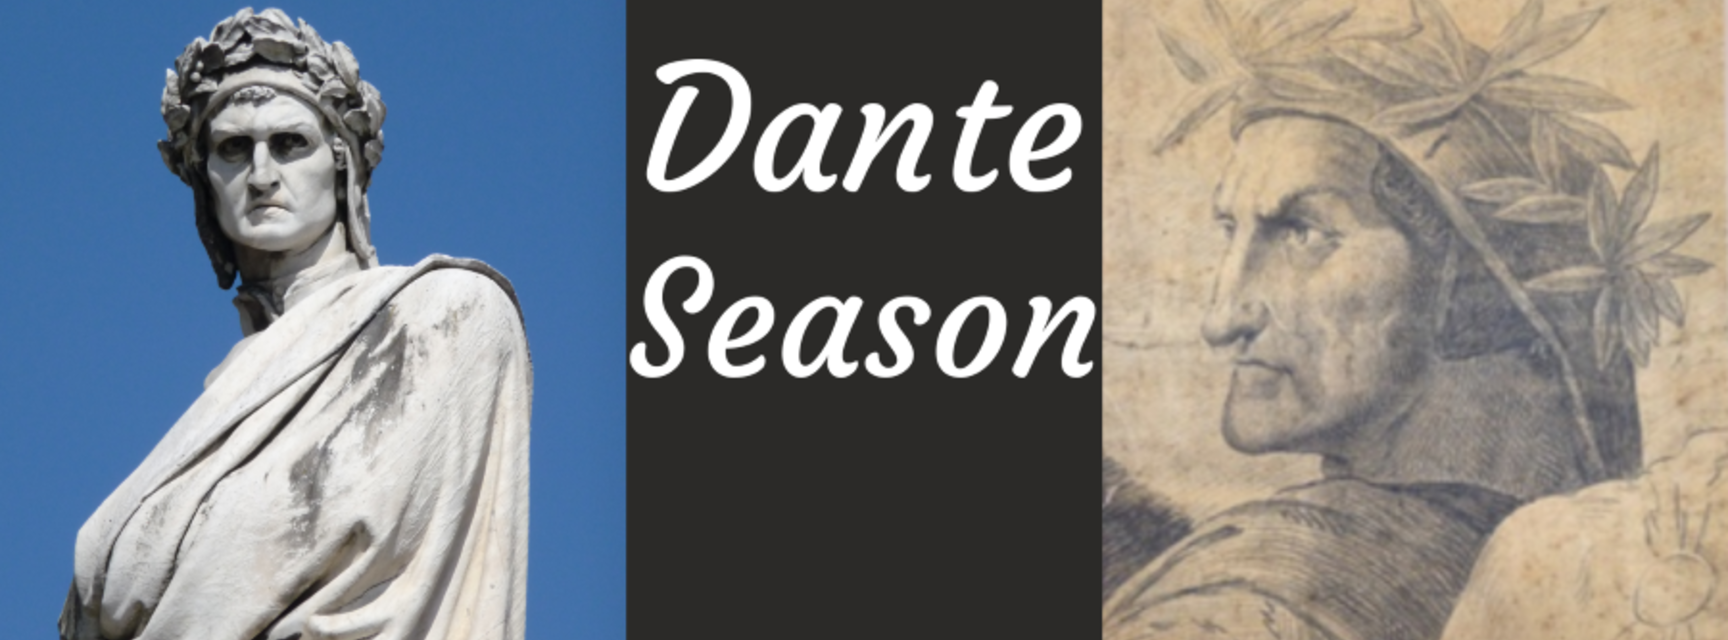 Two images of dante in robes and wreath around his head border black rectangle which states the title